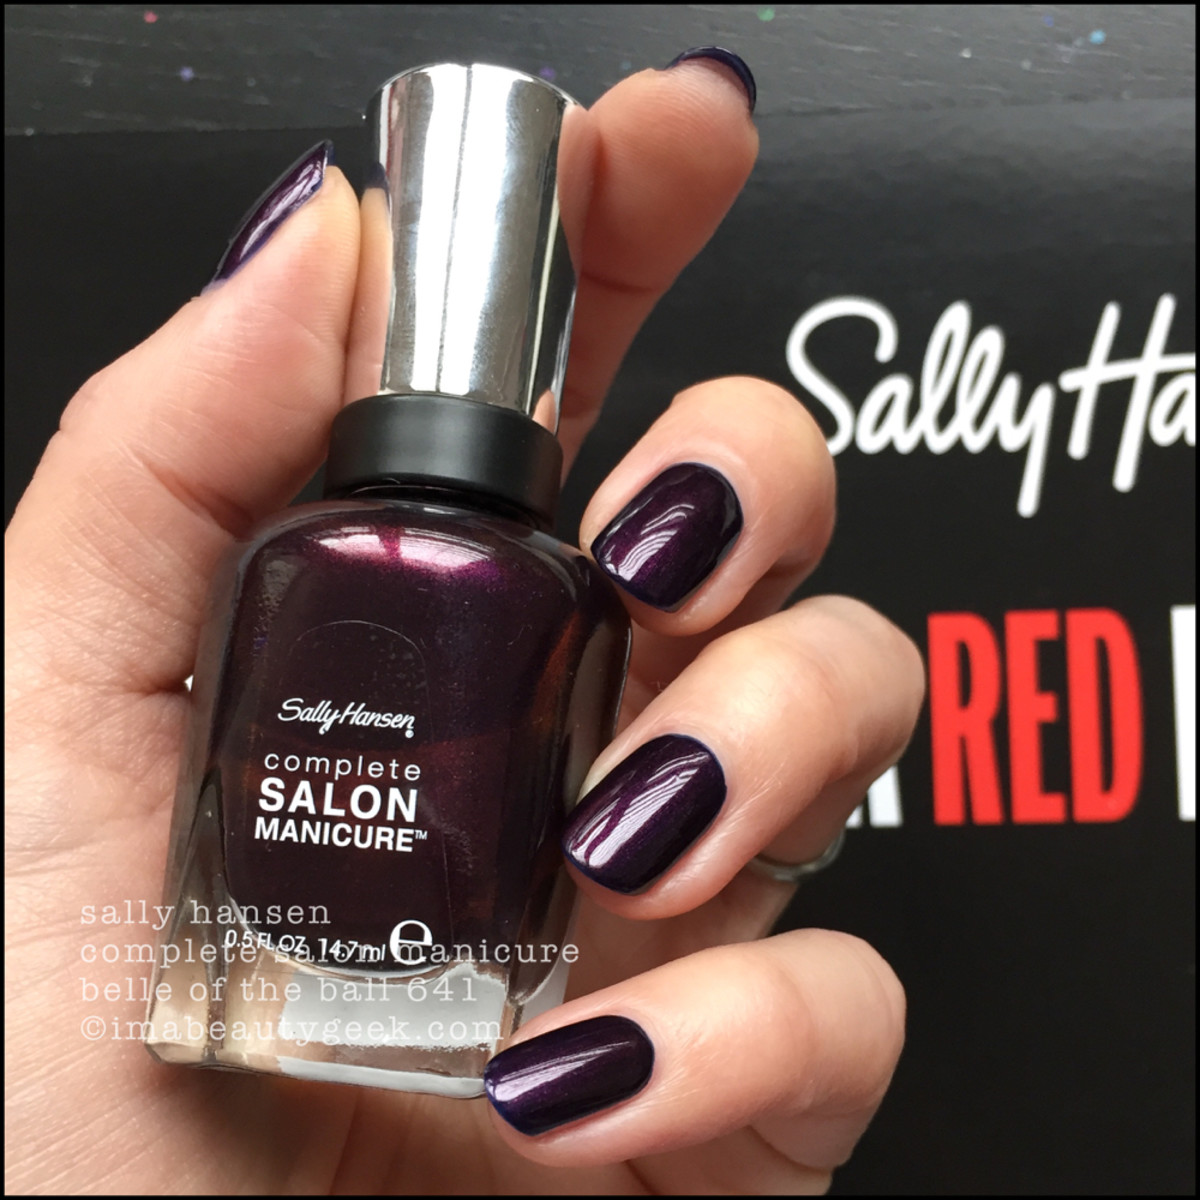 Sally Hansen Belle of the Ball 541 CSM - Red/esign Collection 2018